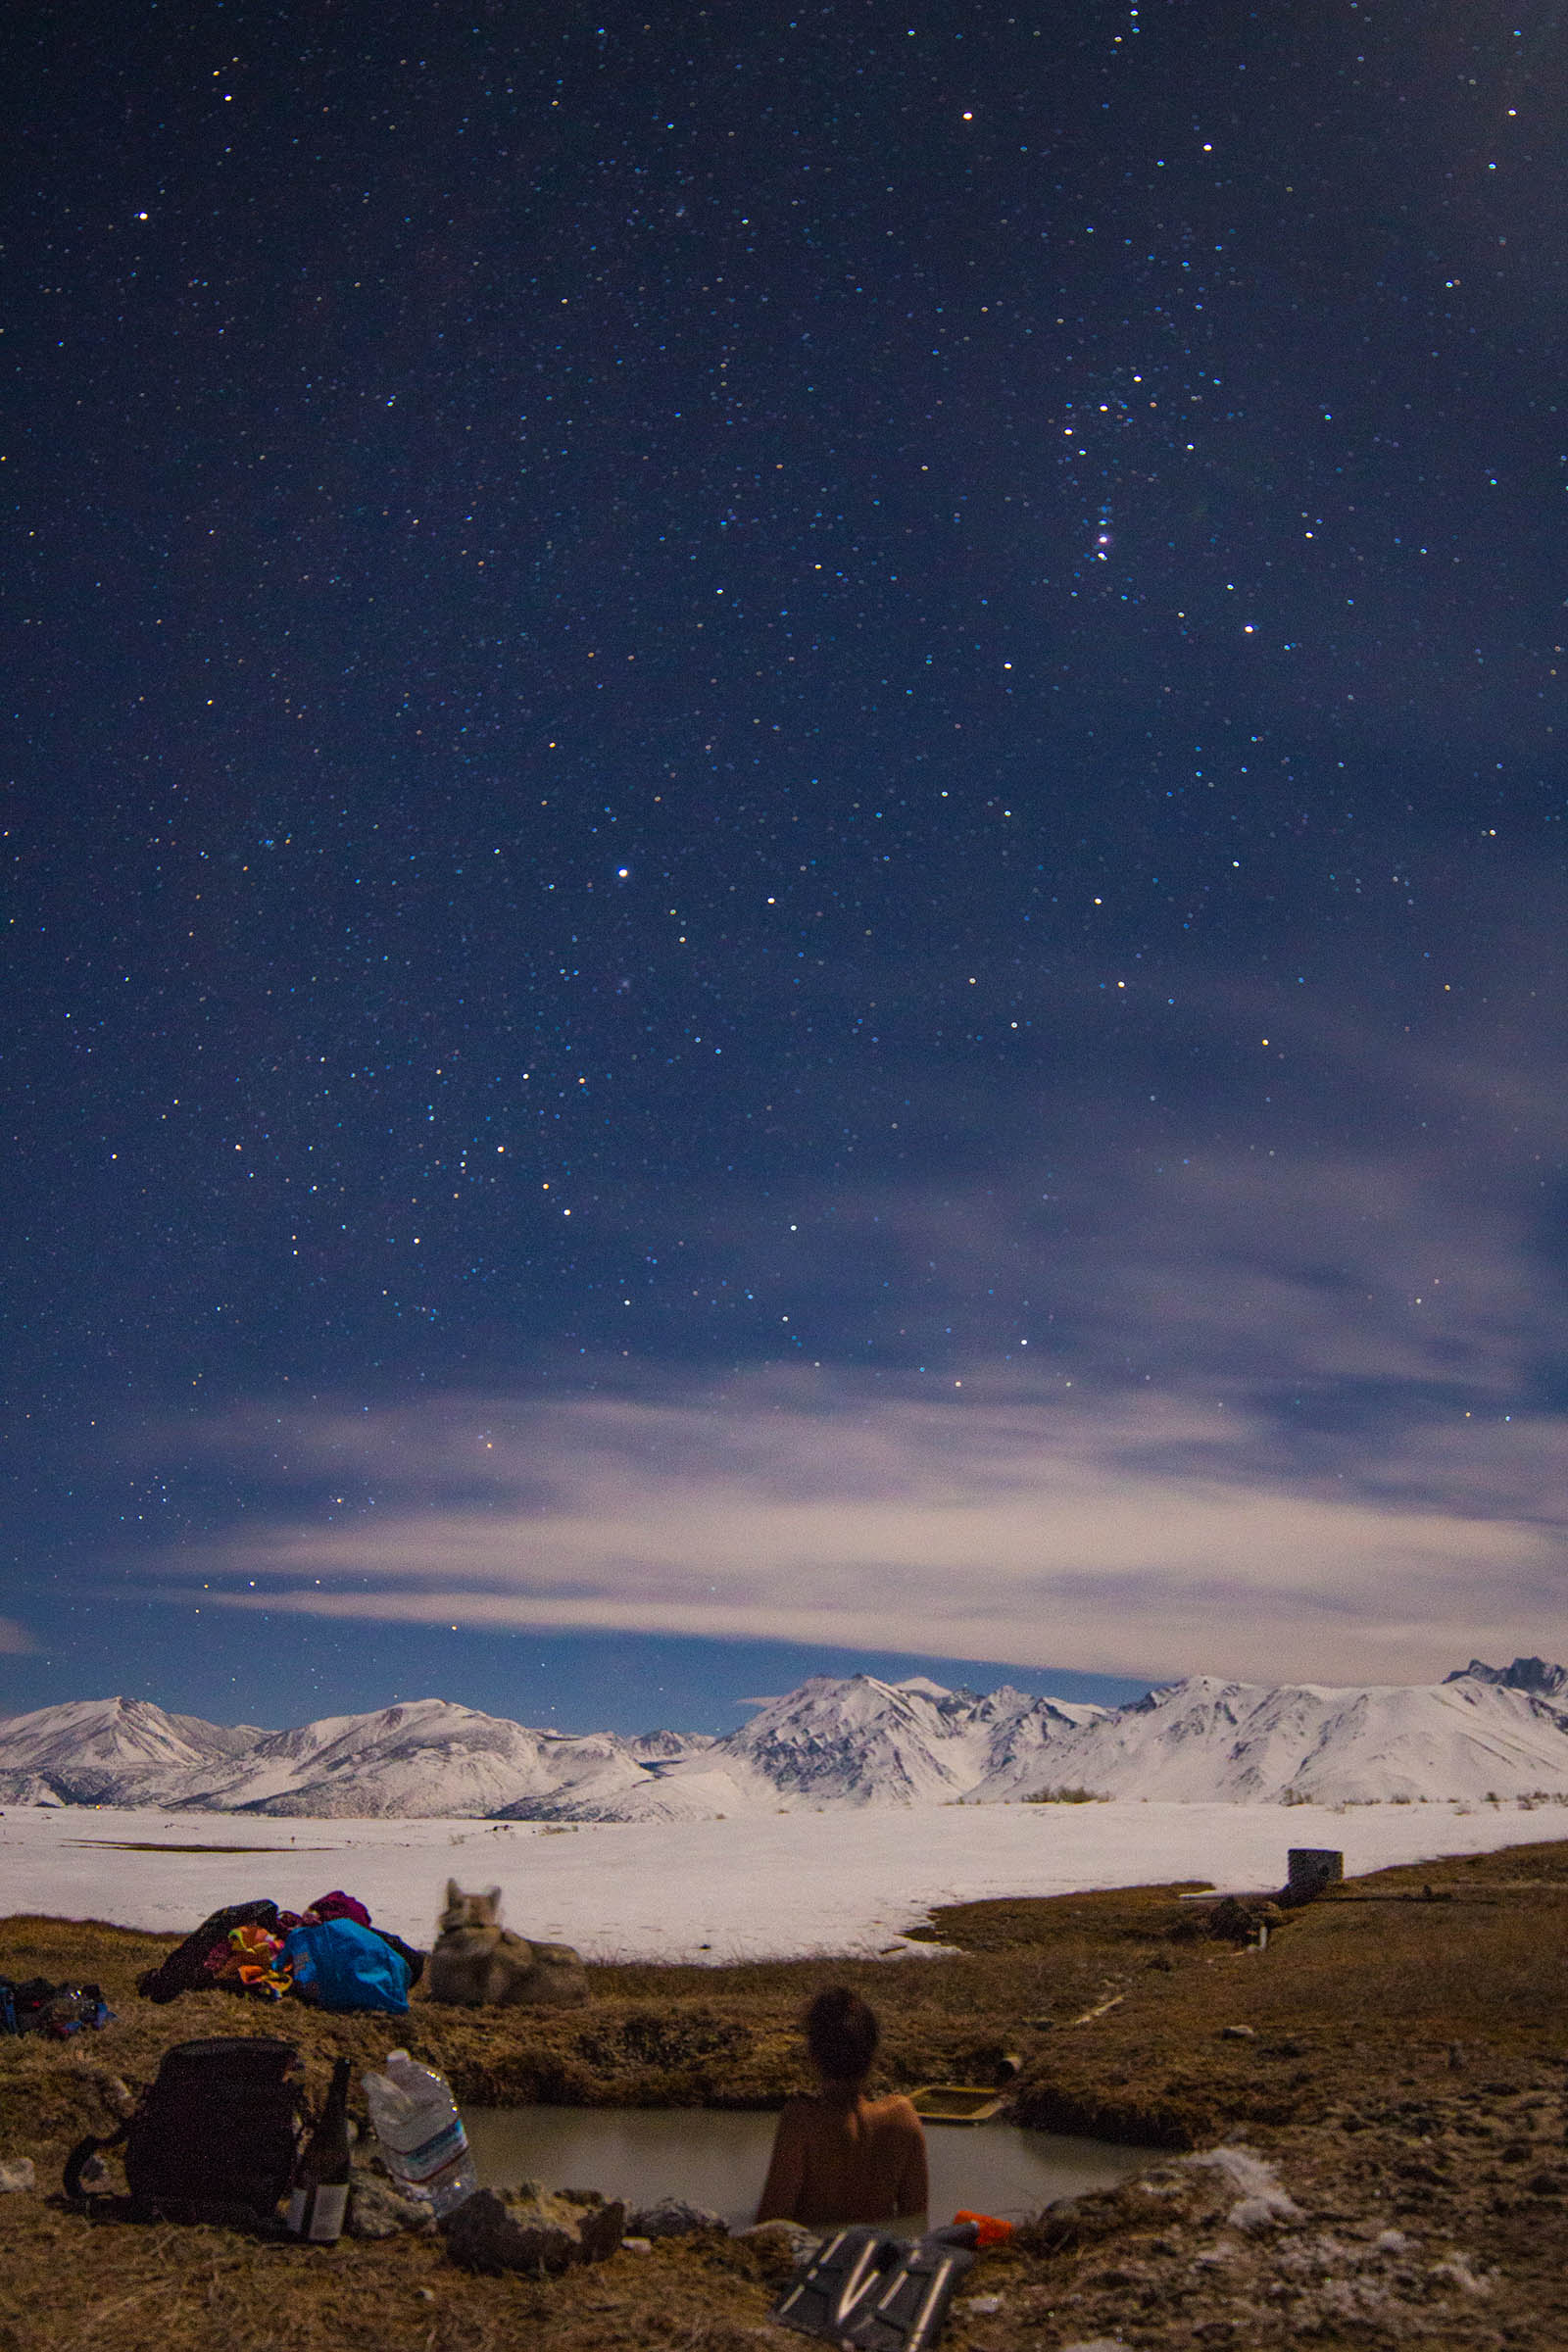 Another example of shooting under the moonlight with similar settings (Samuel Kahn -  @alpineastro )